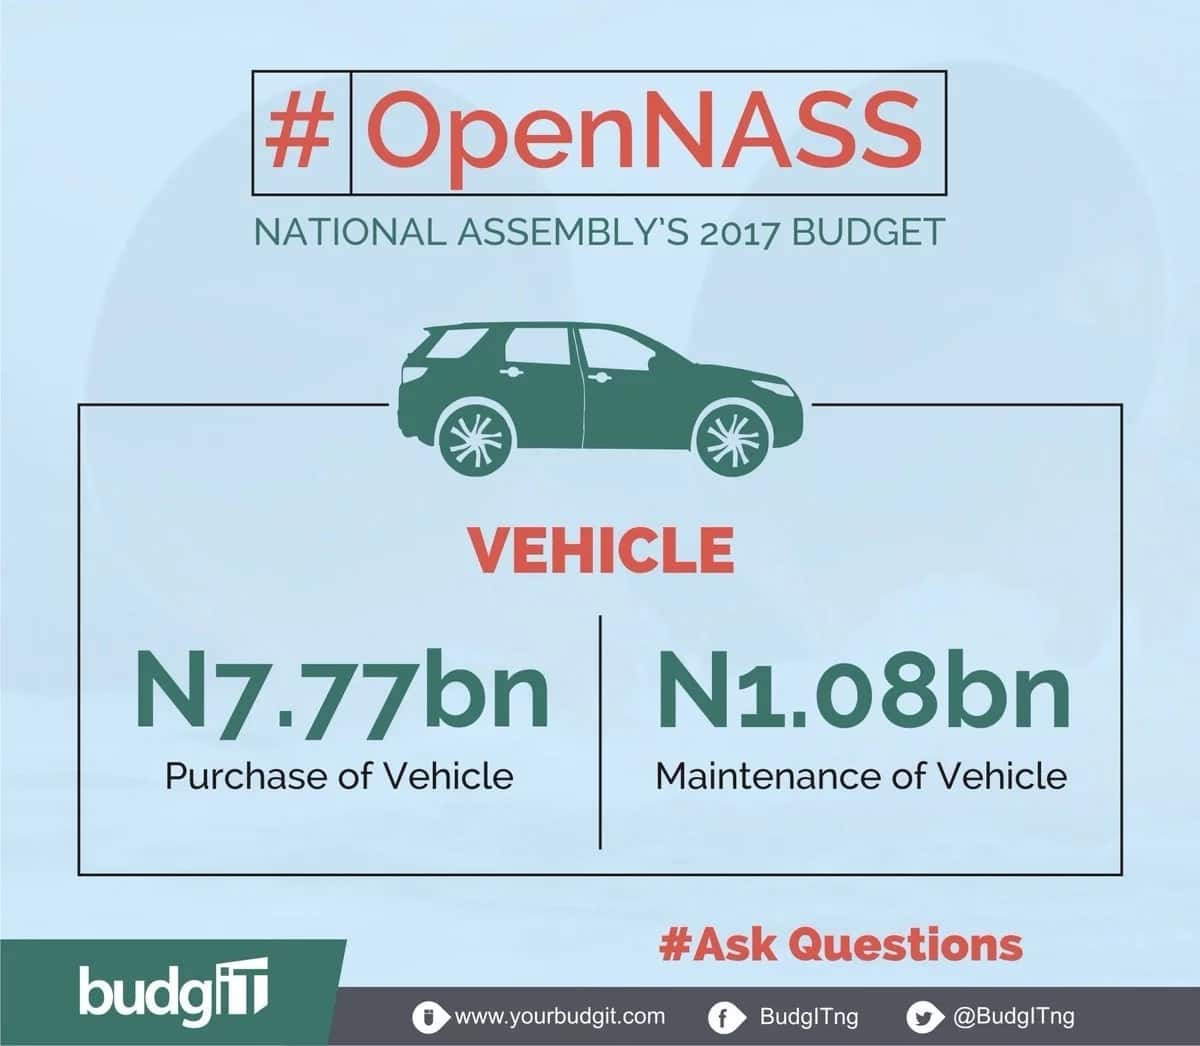 NASS vehicle budget for 2017. Picture Credit: BudgIT